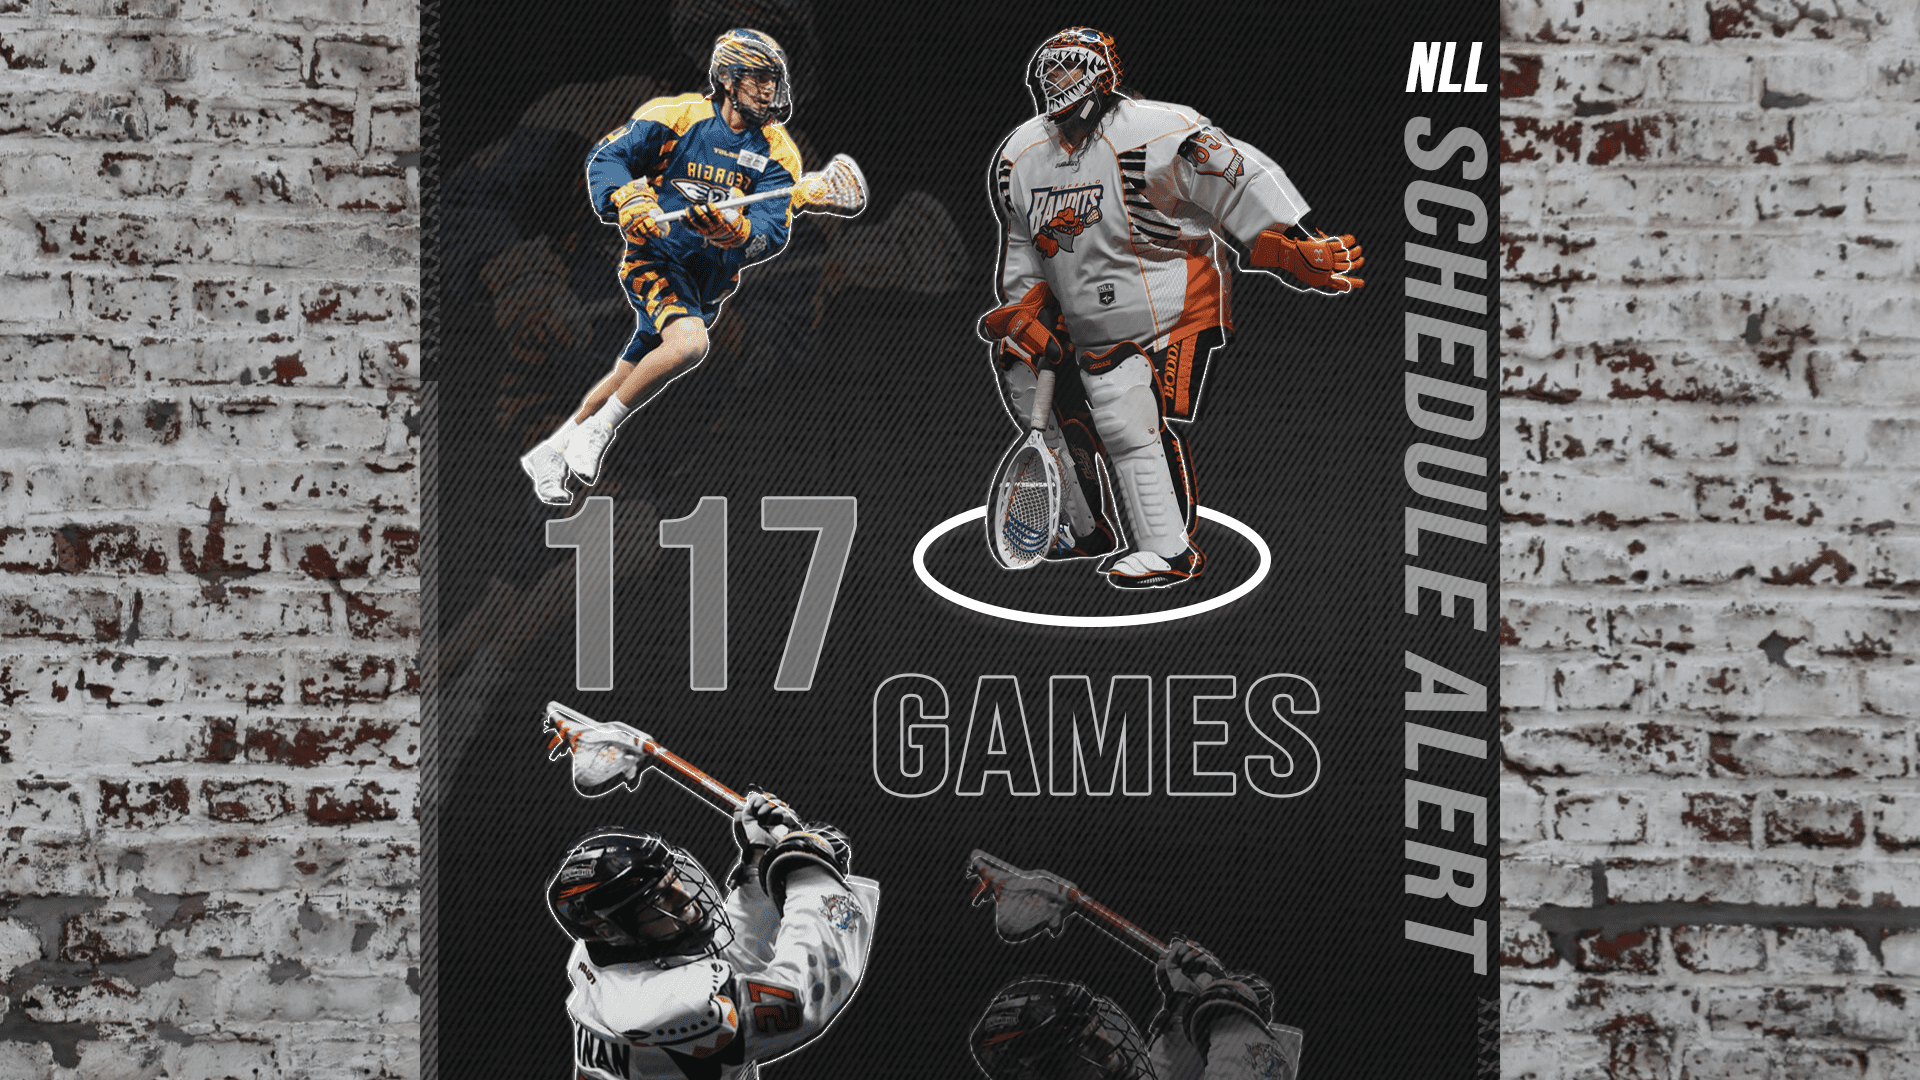 nll national lacrosse league 2019-2020 nll schedule